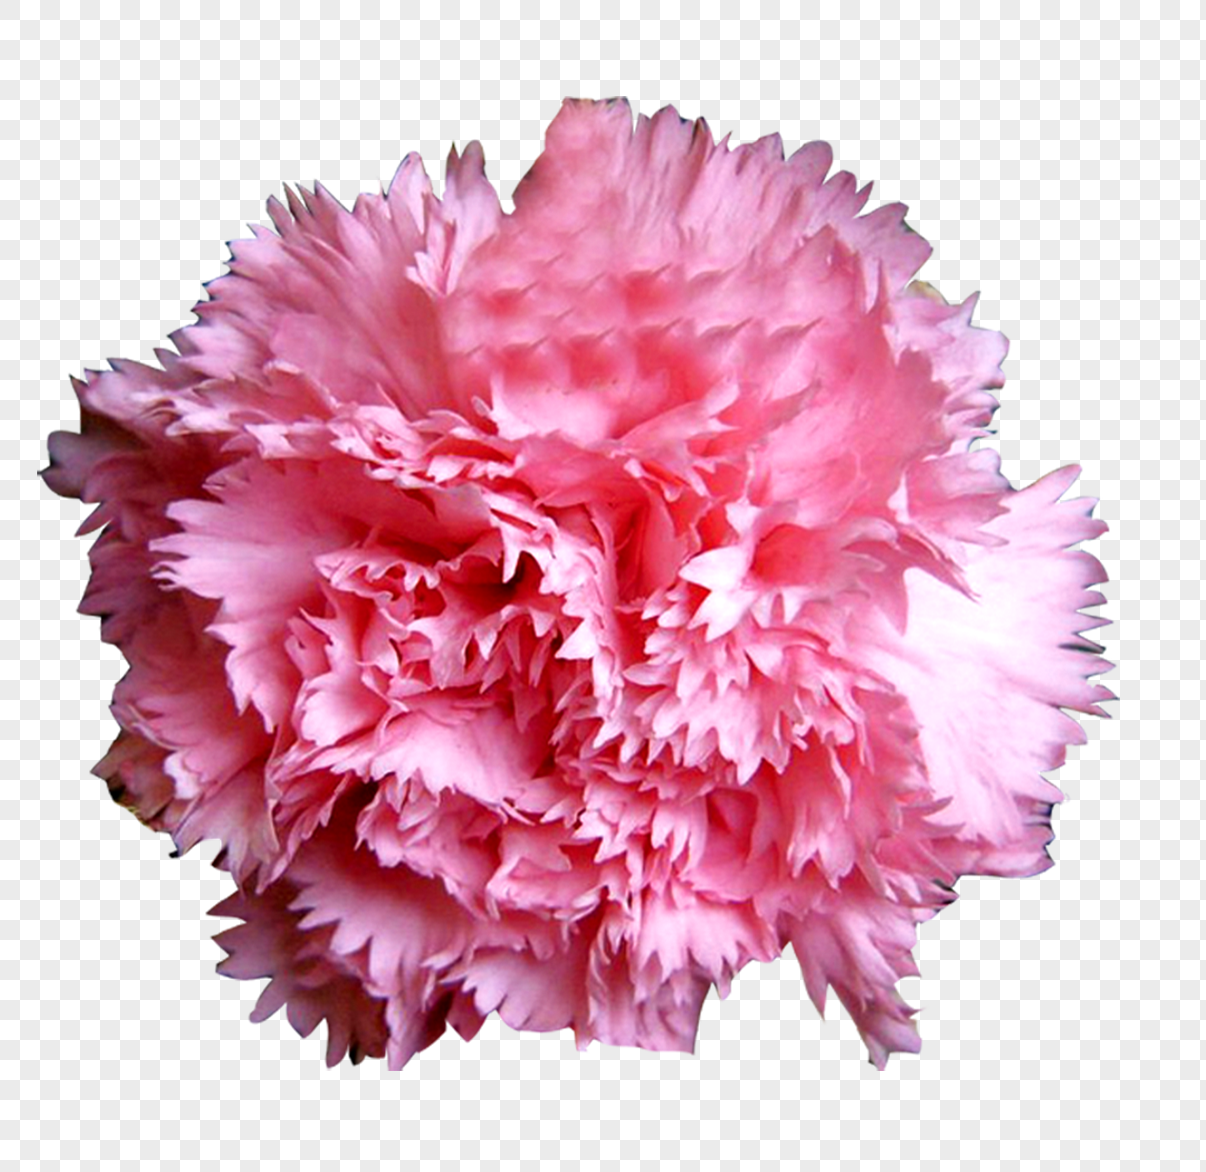 Flower Pink Carnation Flower Ball Png Imagepicture Free Download